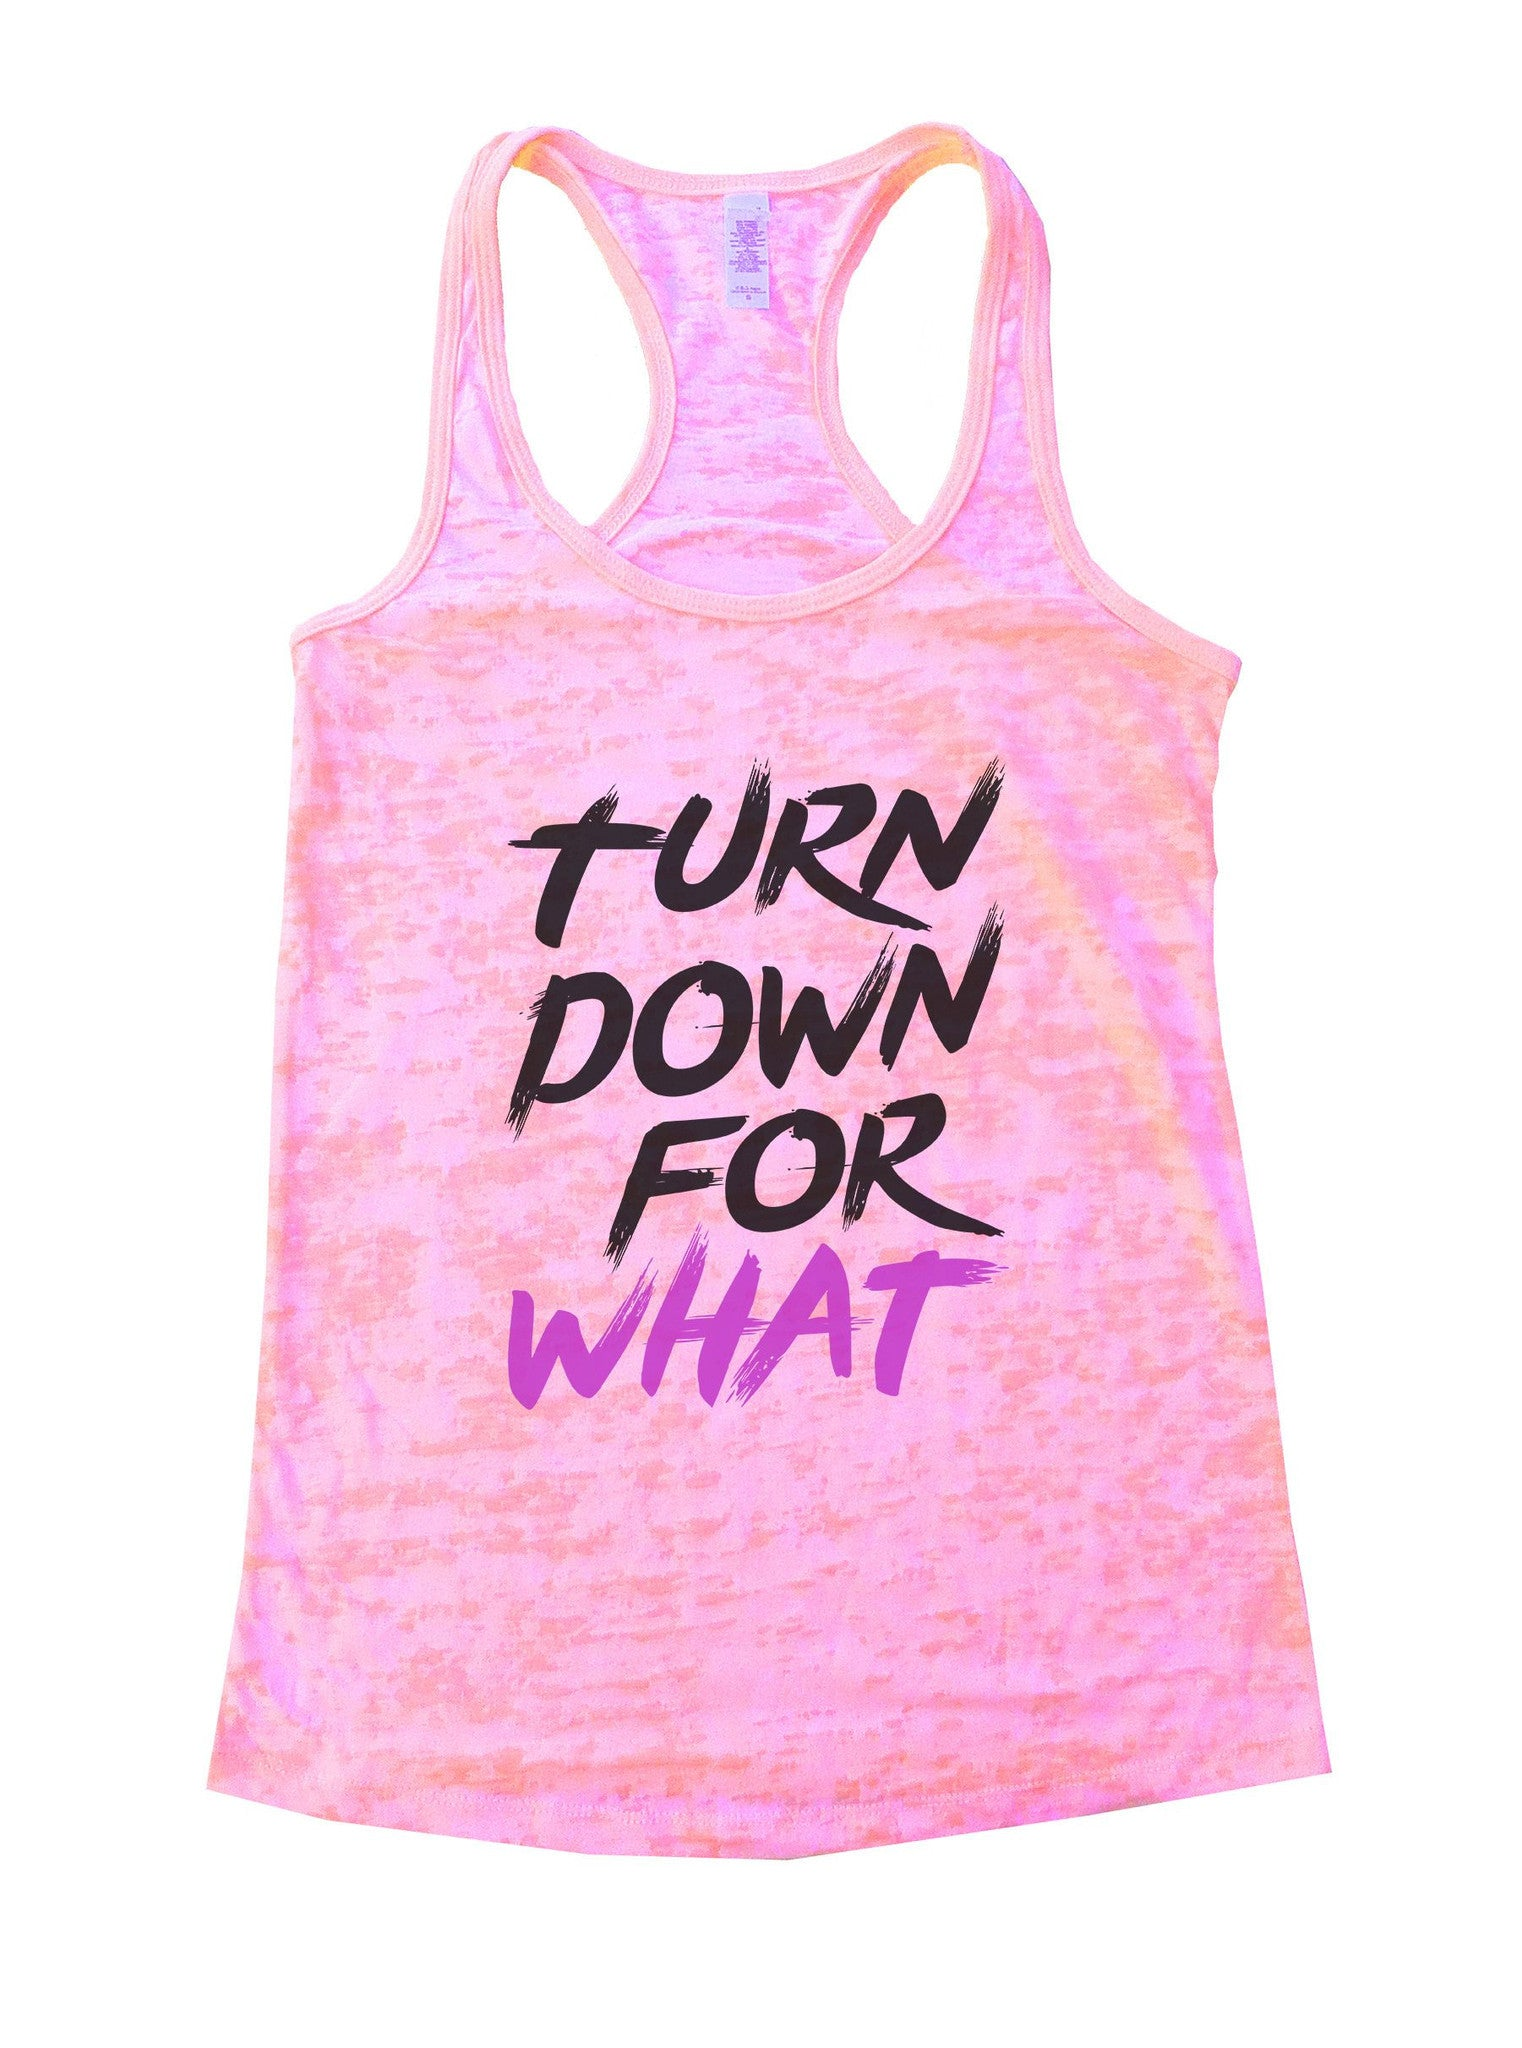 Turn Down For What Burnout Tank Top By BurnoutTankTops.com - 1126 - Funny Shirts Tank Tops Burnouts and Triblends  - 3